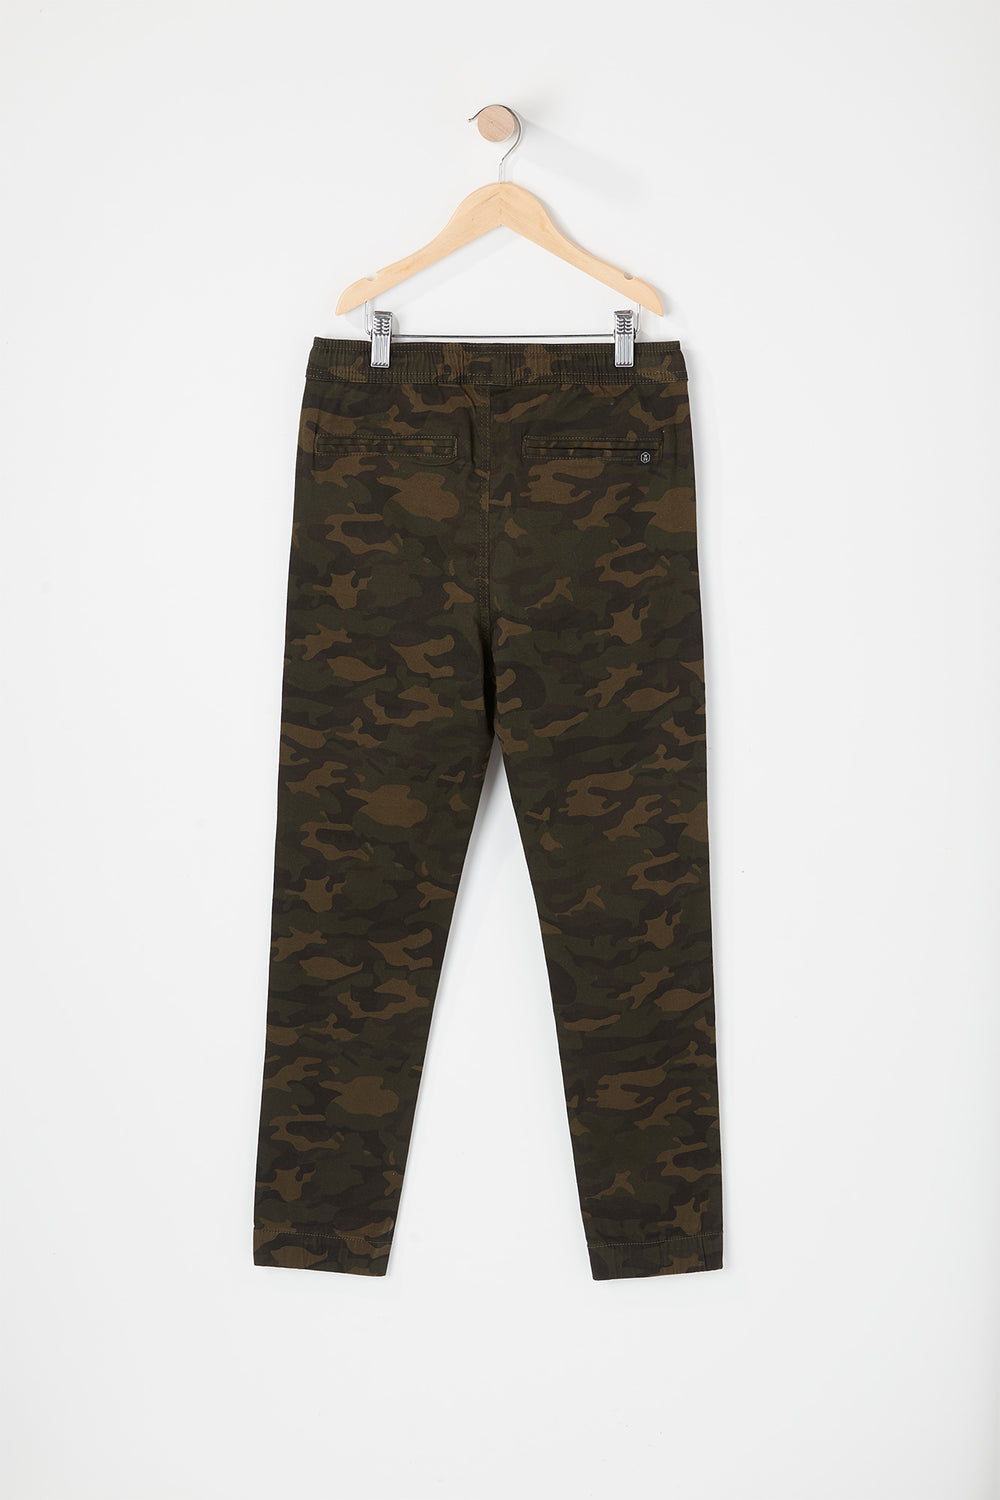 West49 Youth Classic Jogger Camouflage